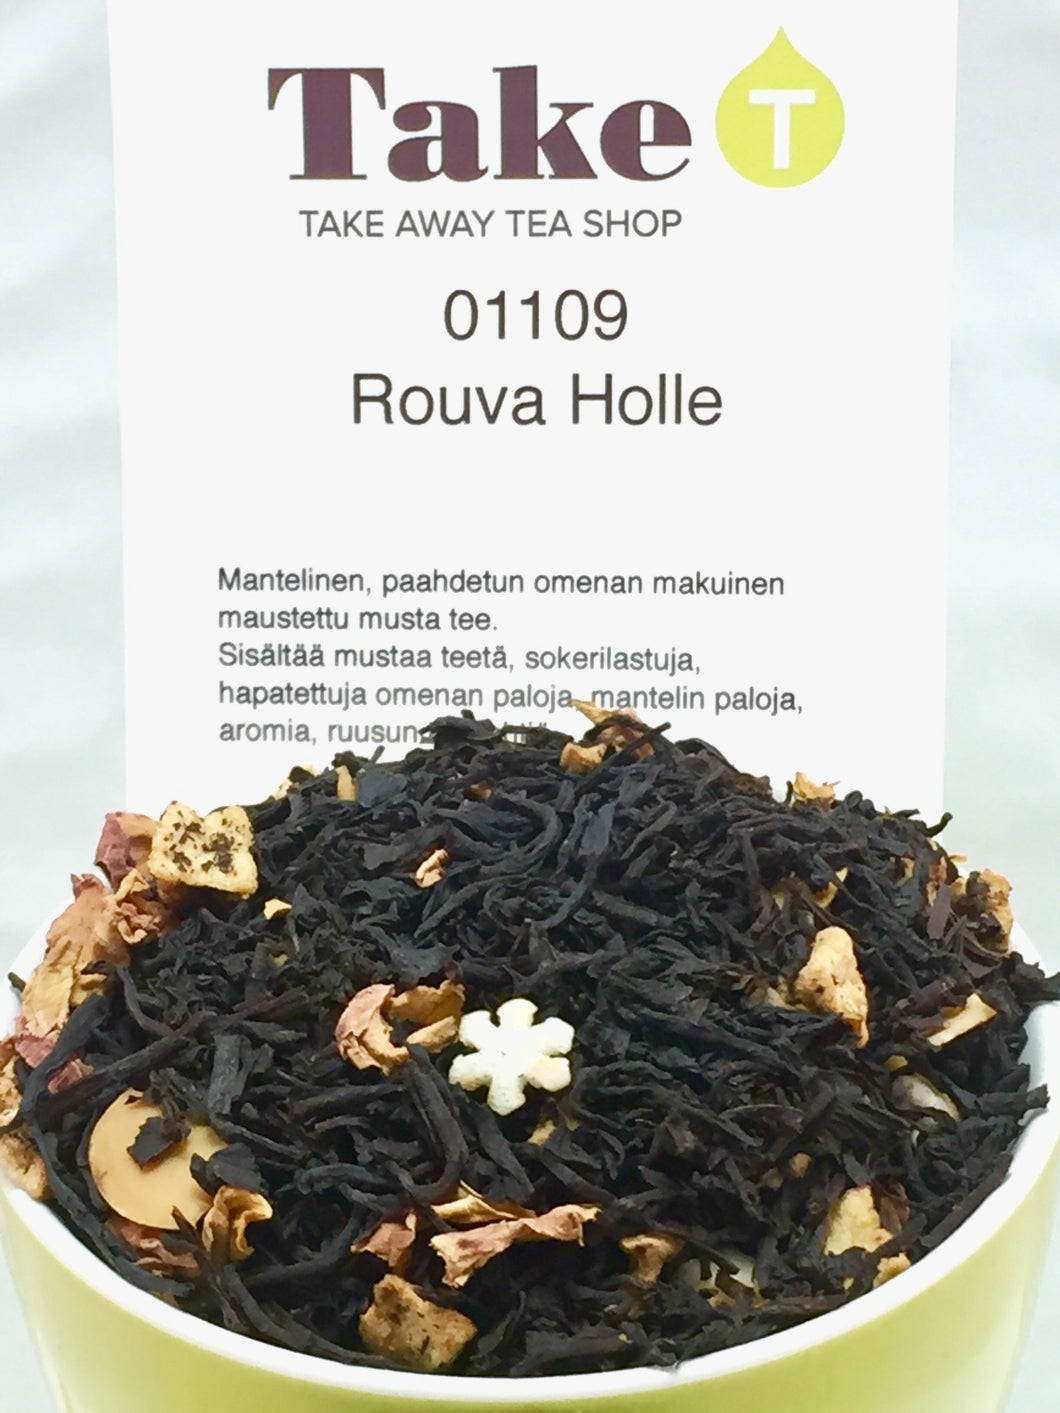 Rouva Holle